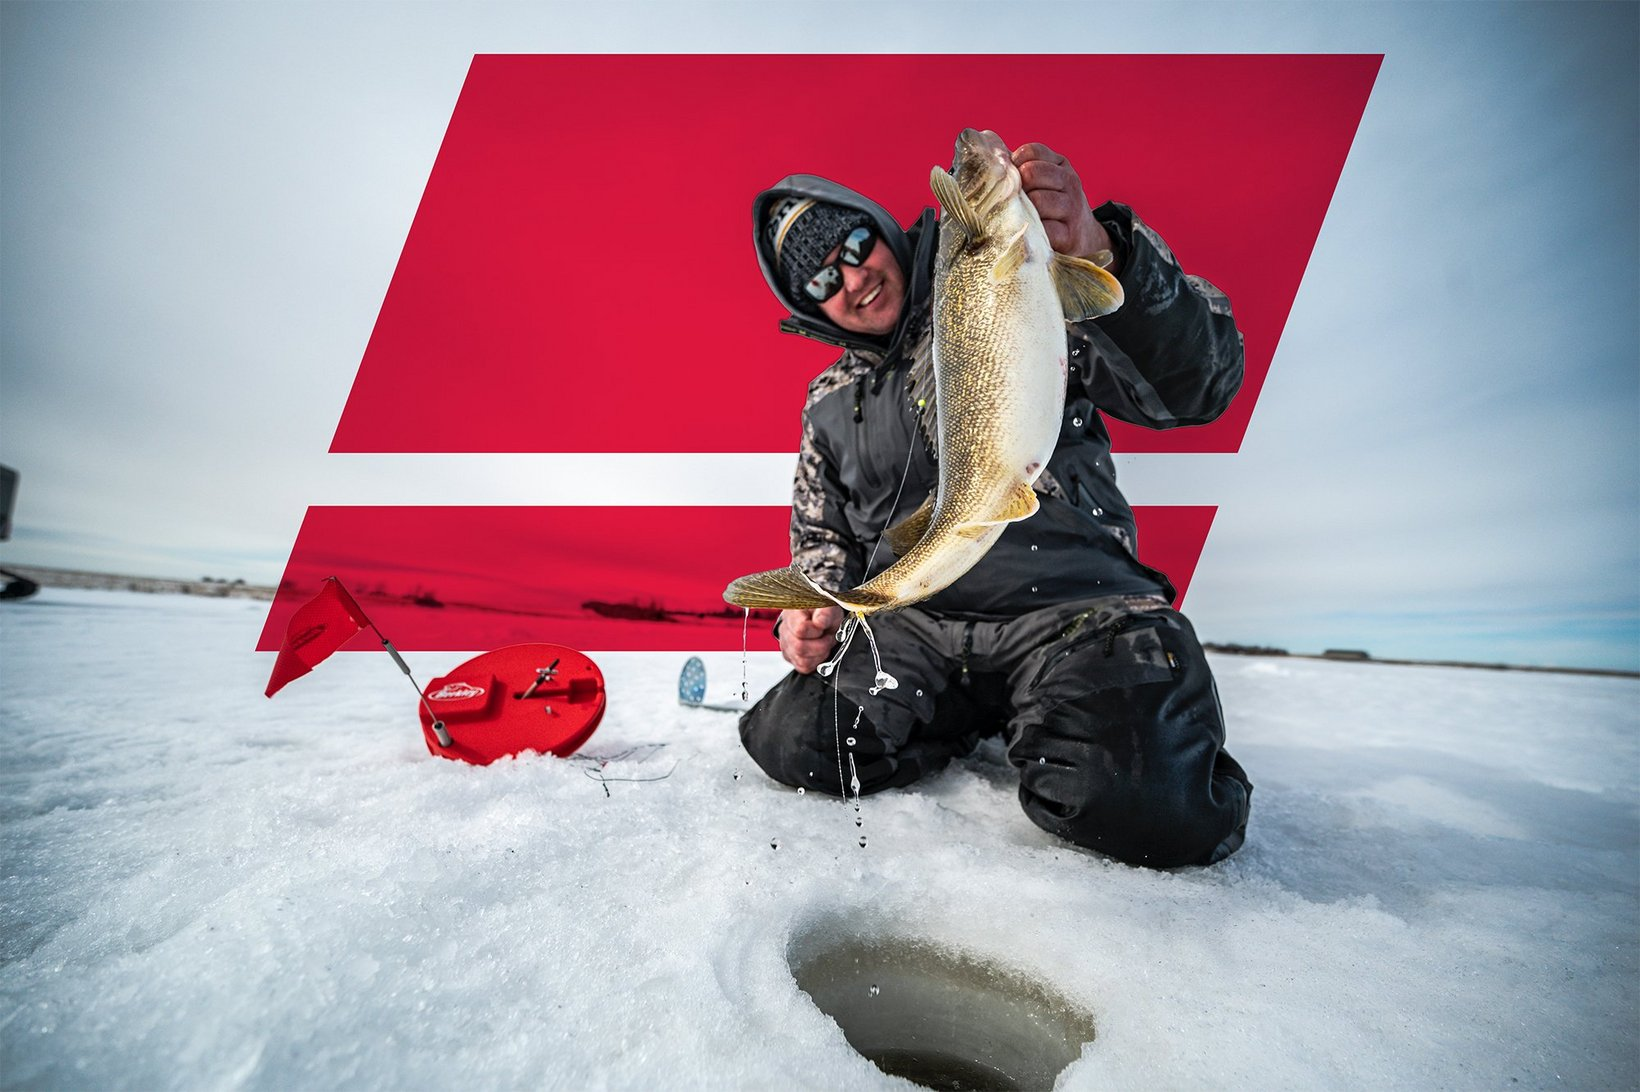 Angler holding fish on ice in front of superimposed Abu Garcia logo